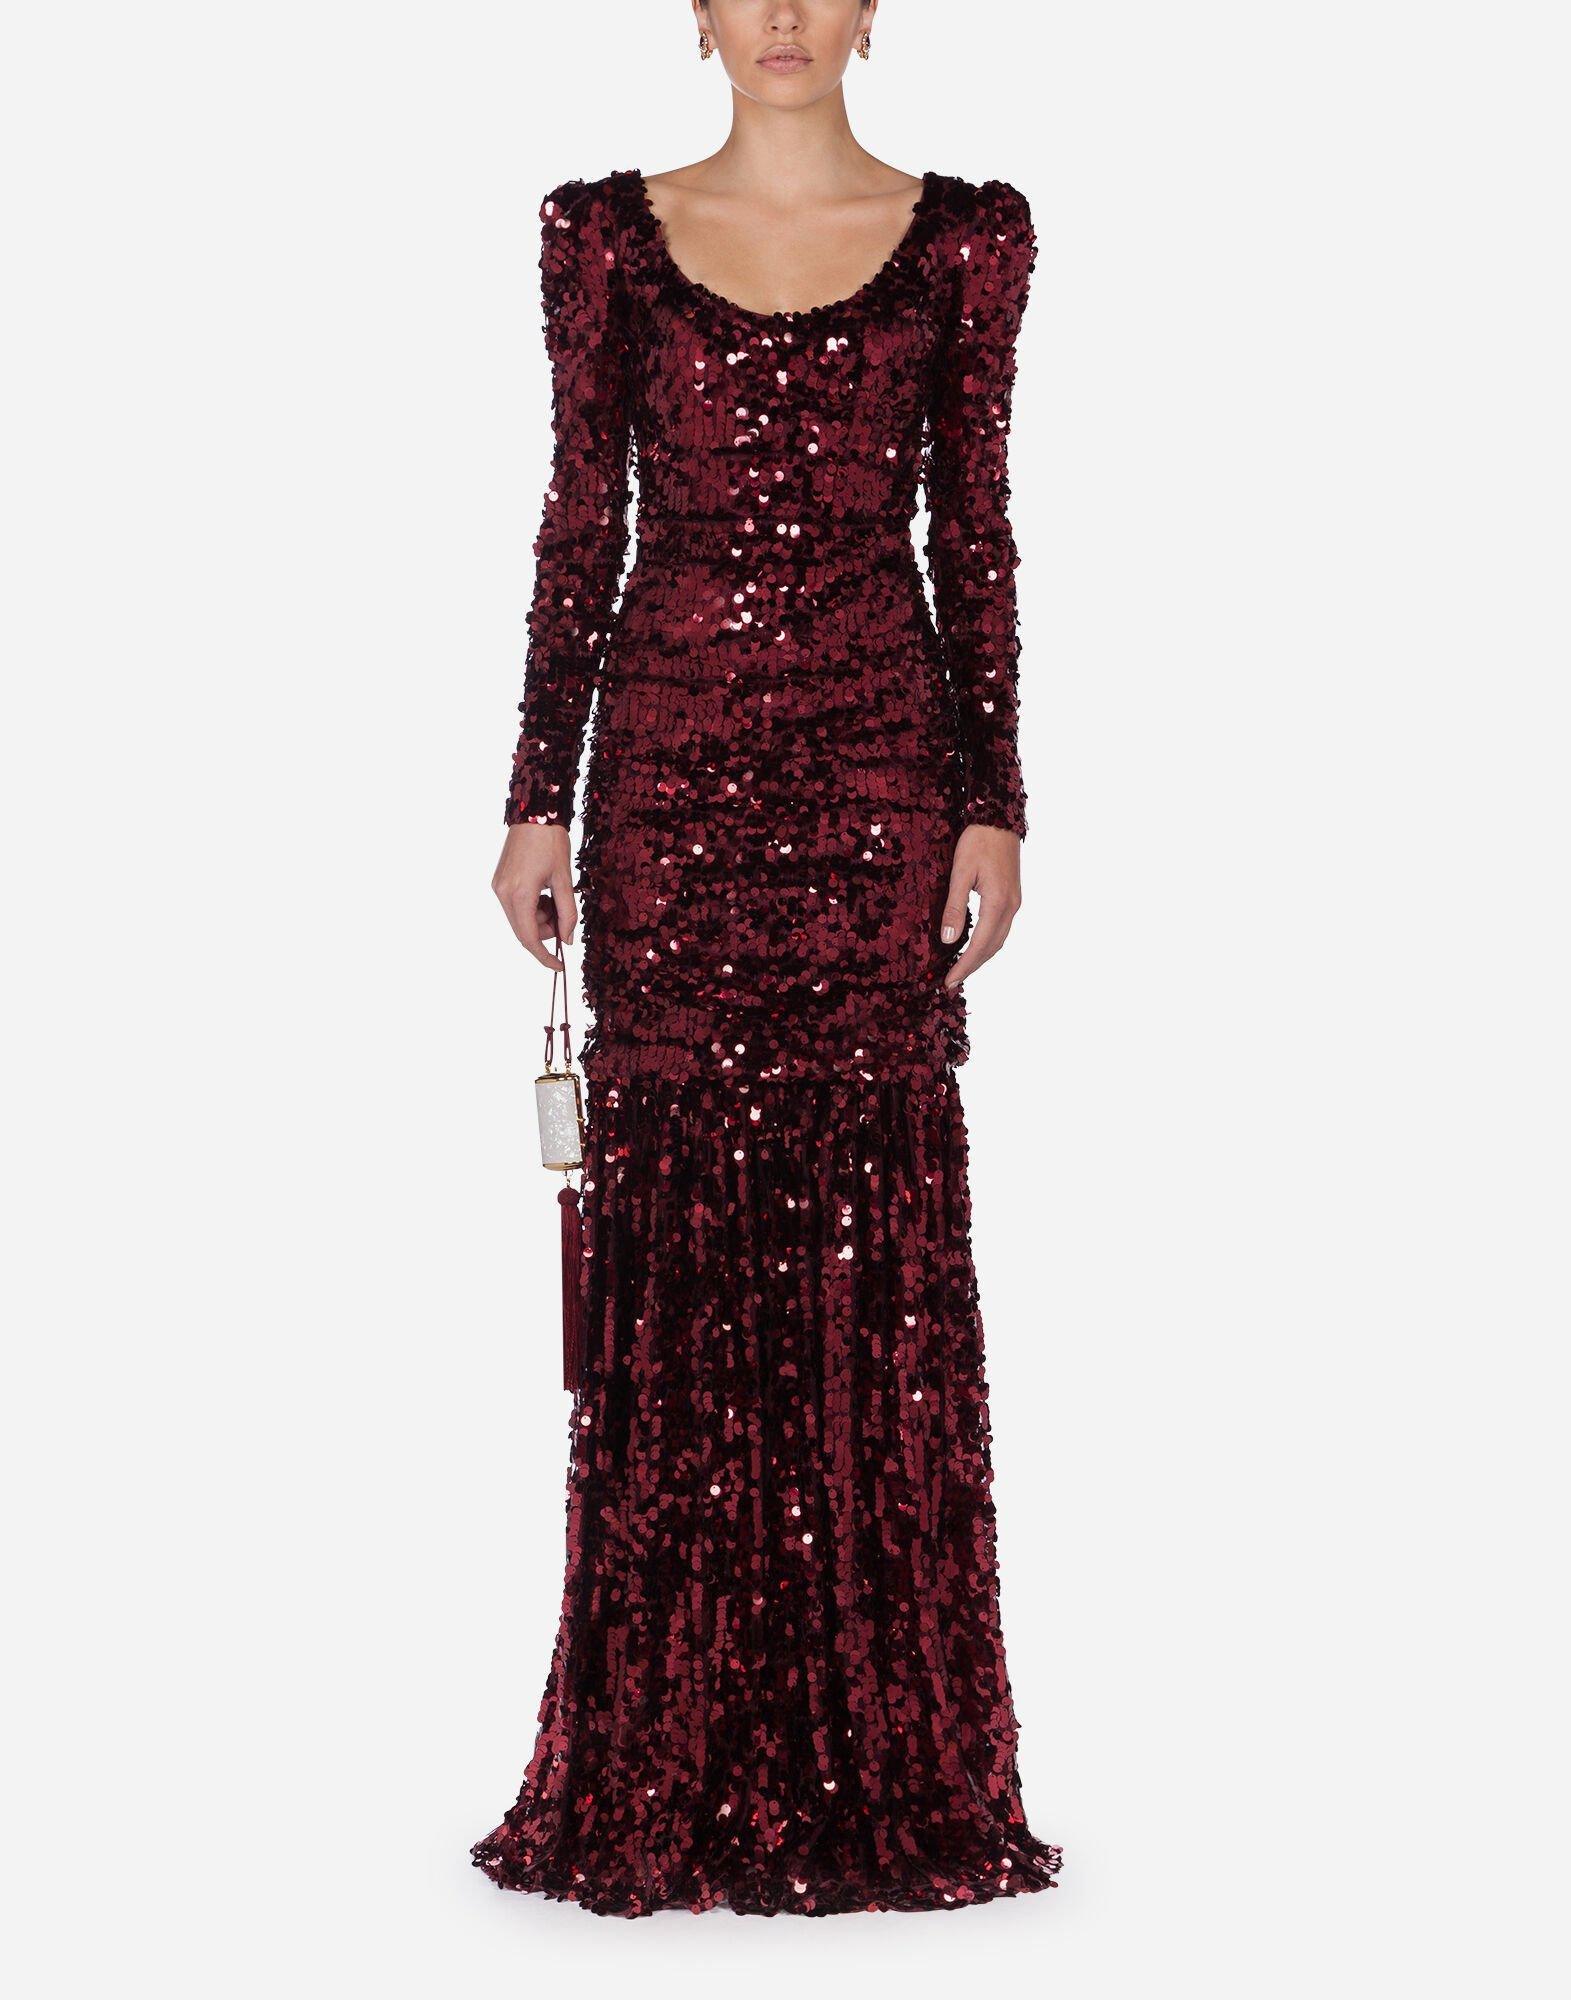 Long-sleeved dress with sequined sleeves